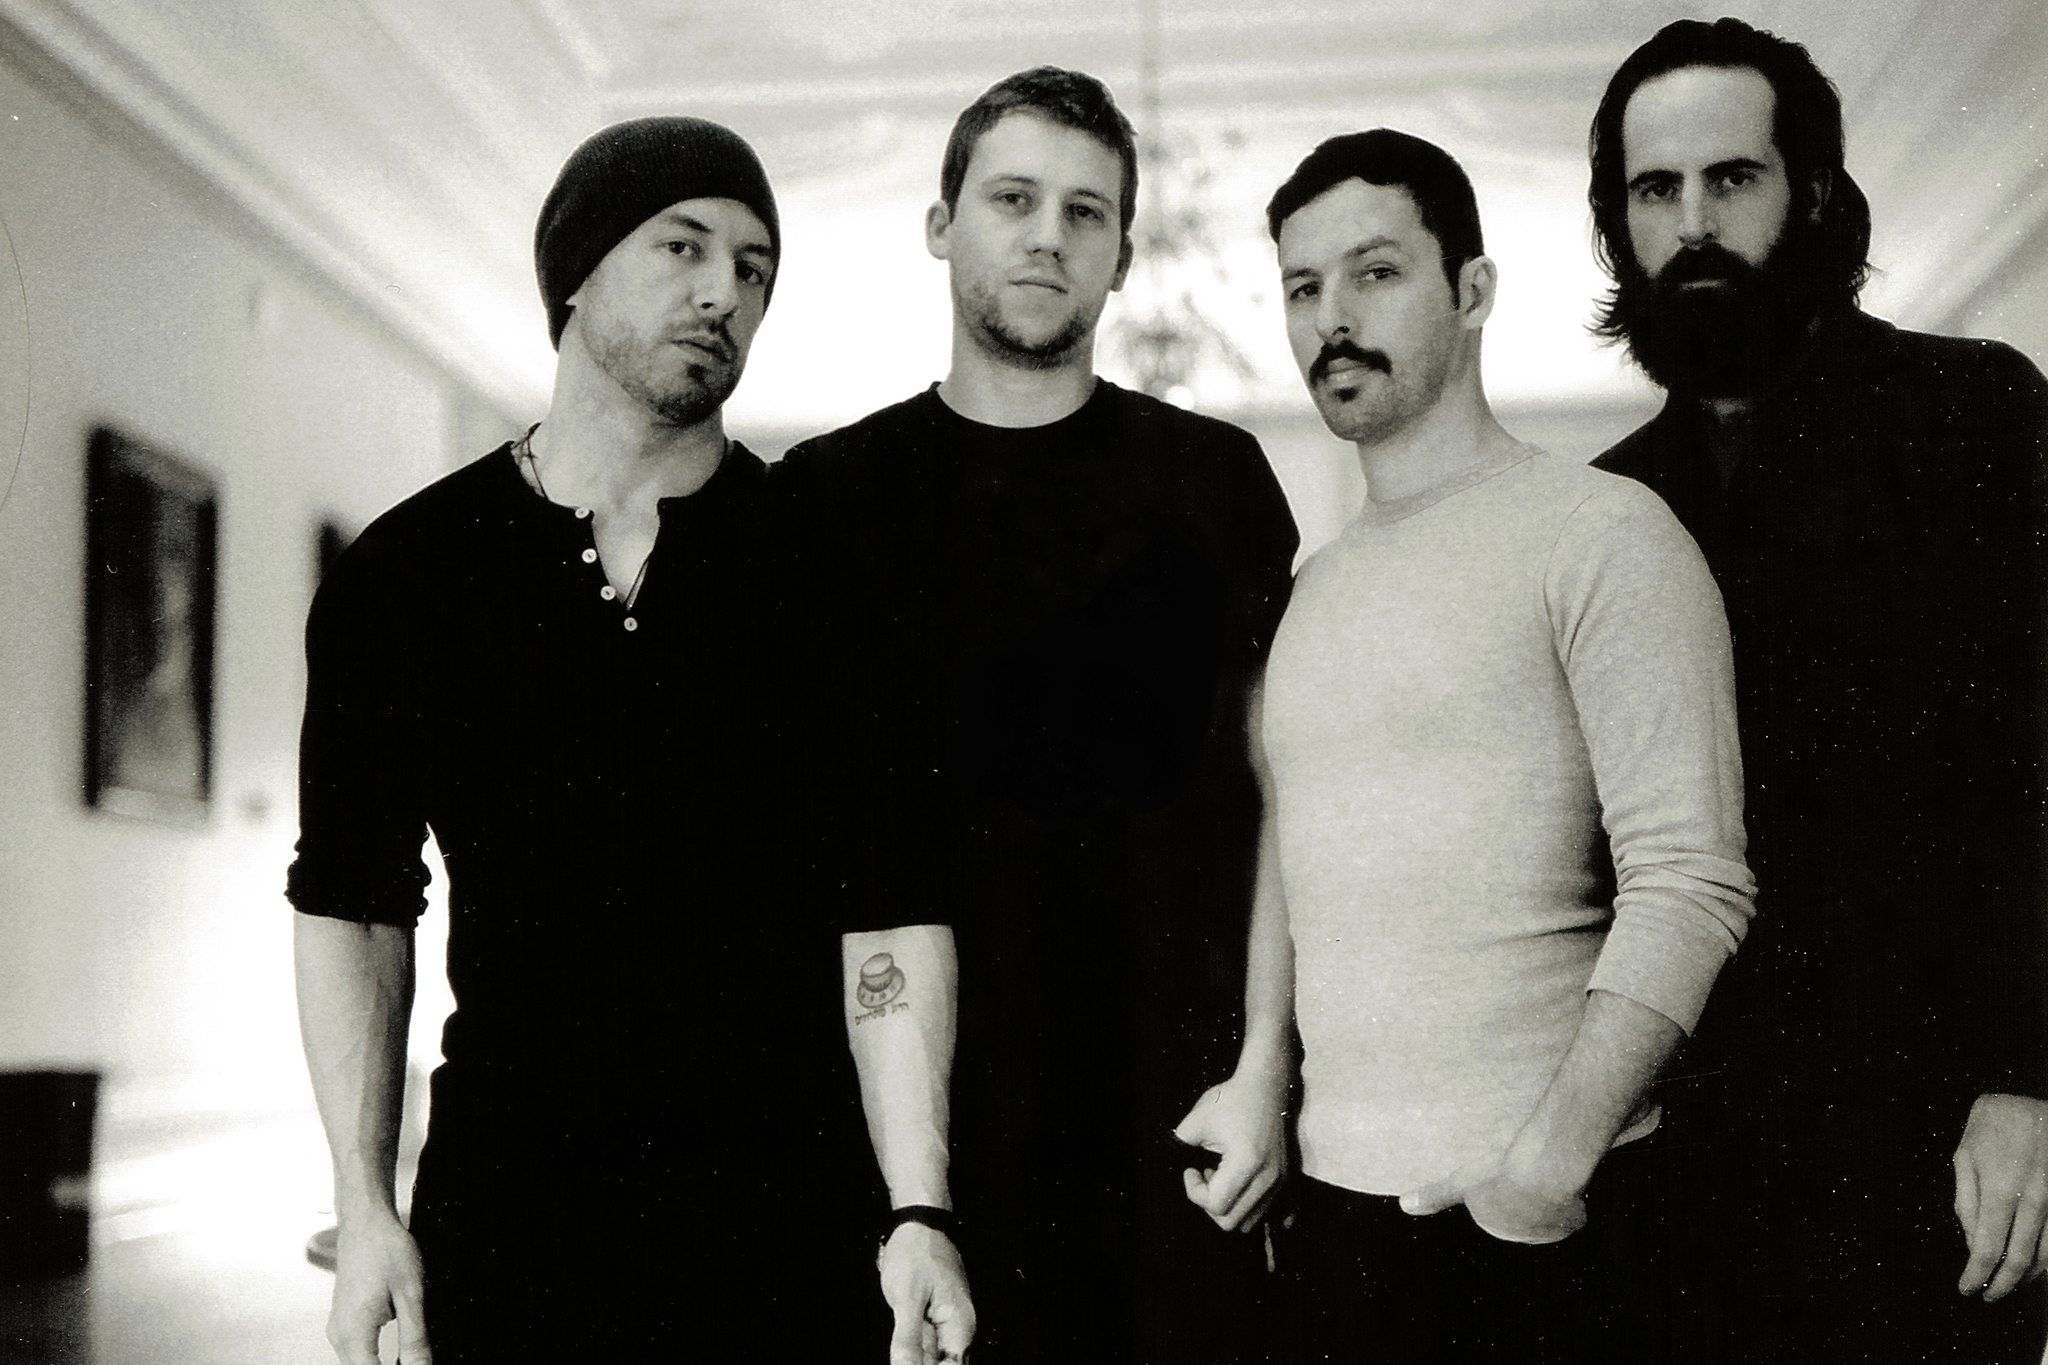 The Summer Slaughter Tour with the Dillinger Escape Plan